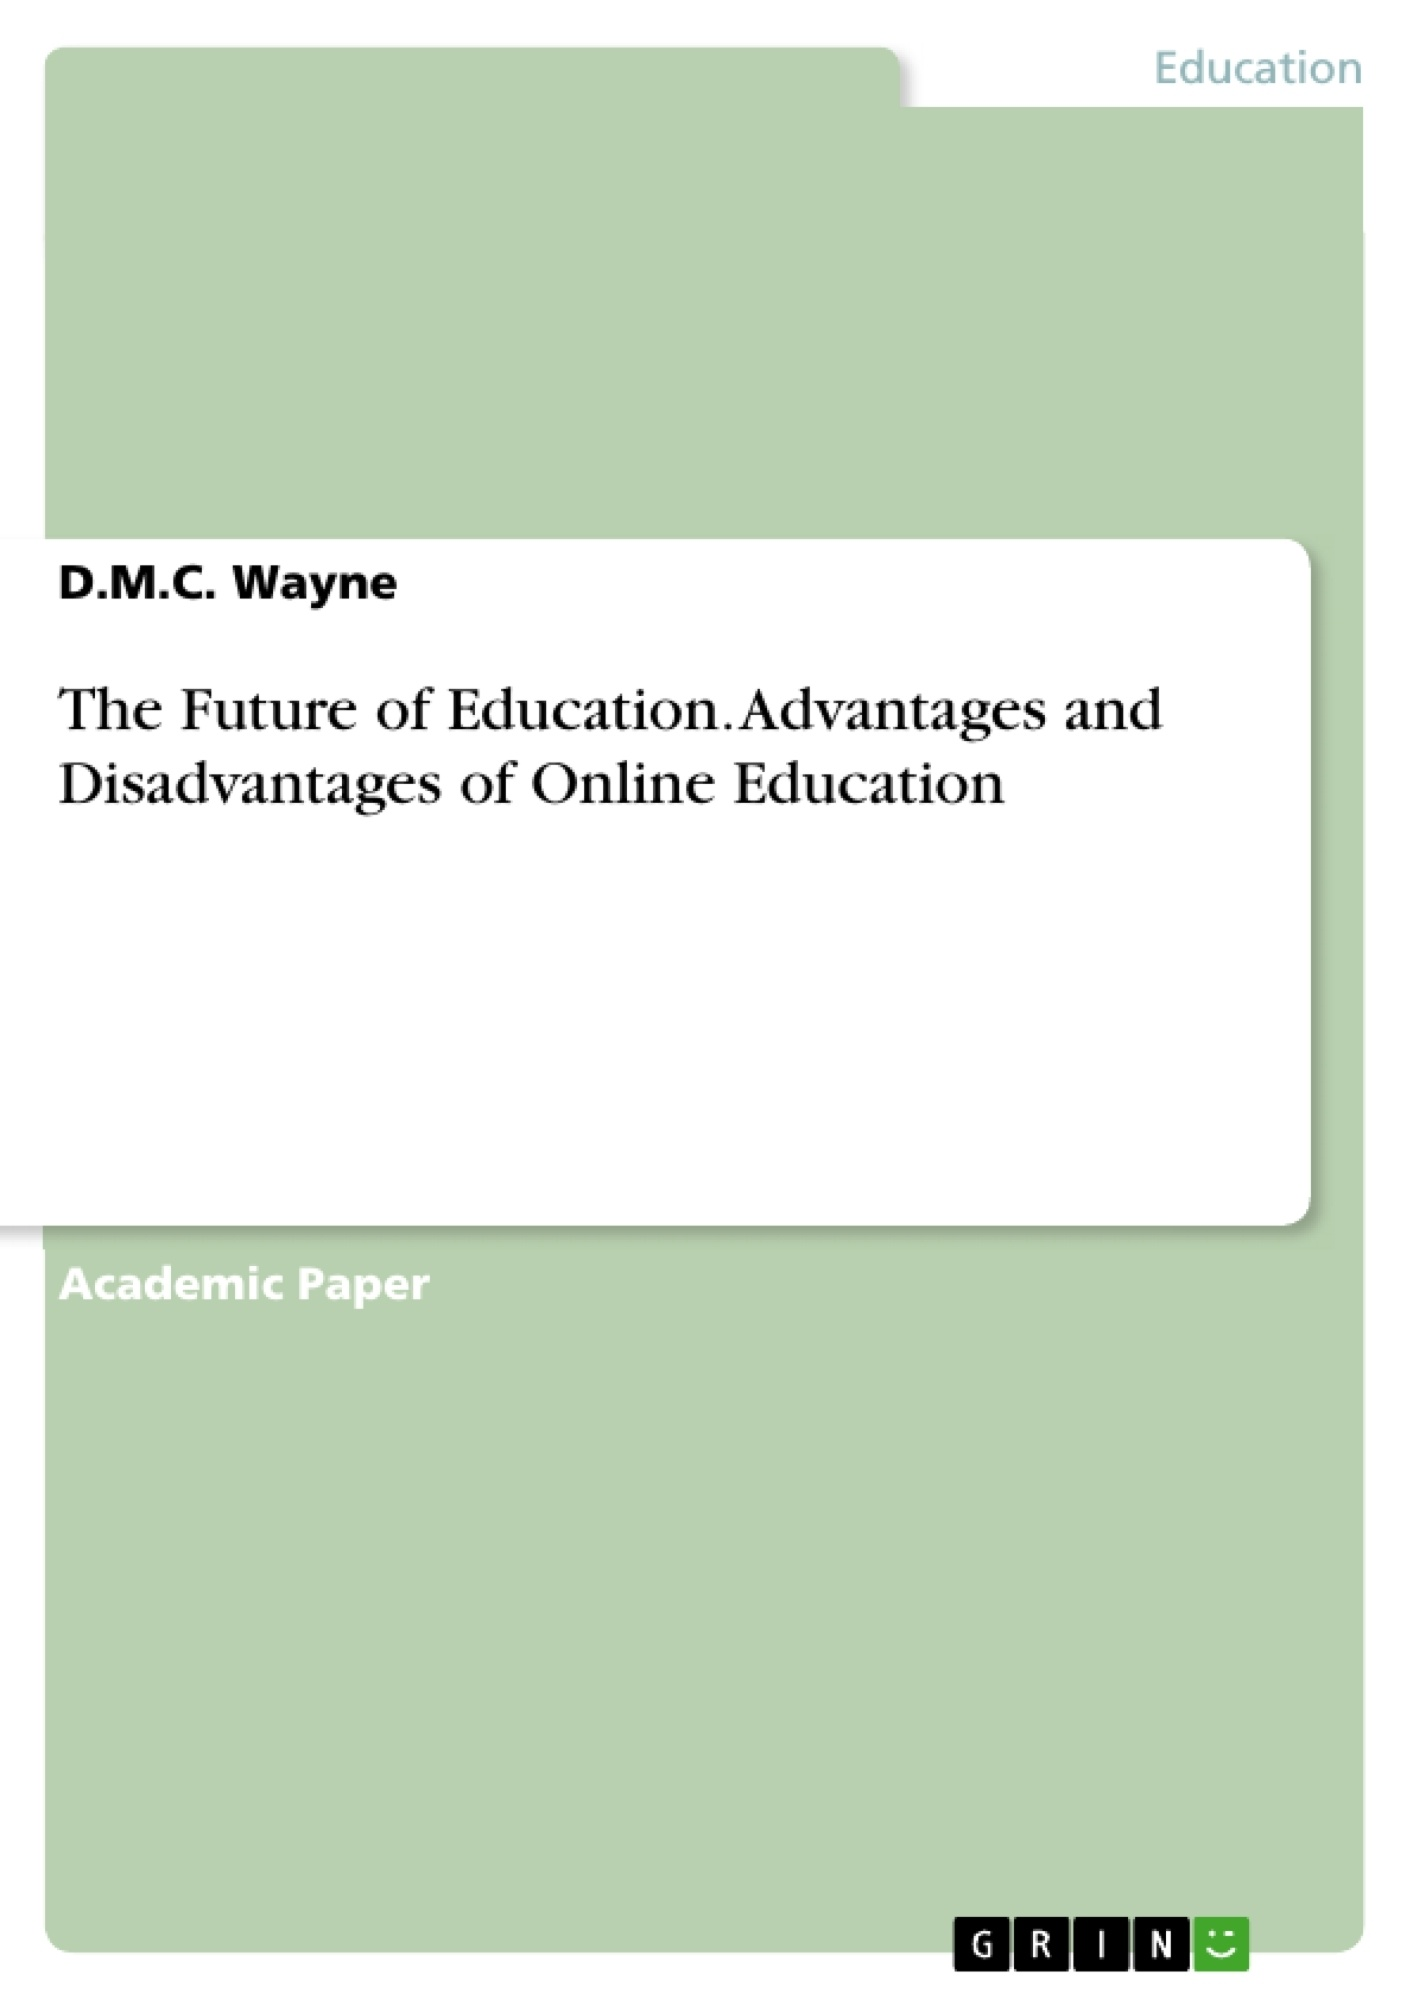 what are the disadvantages of education